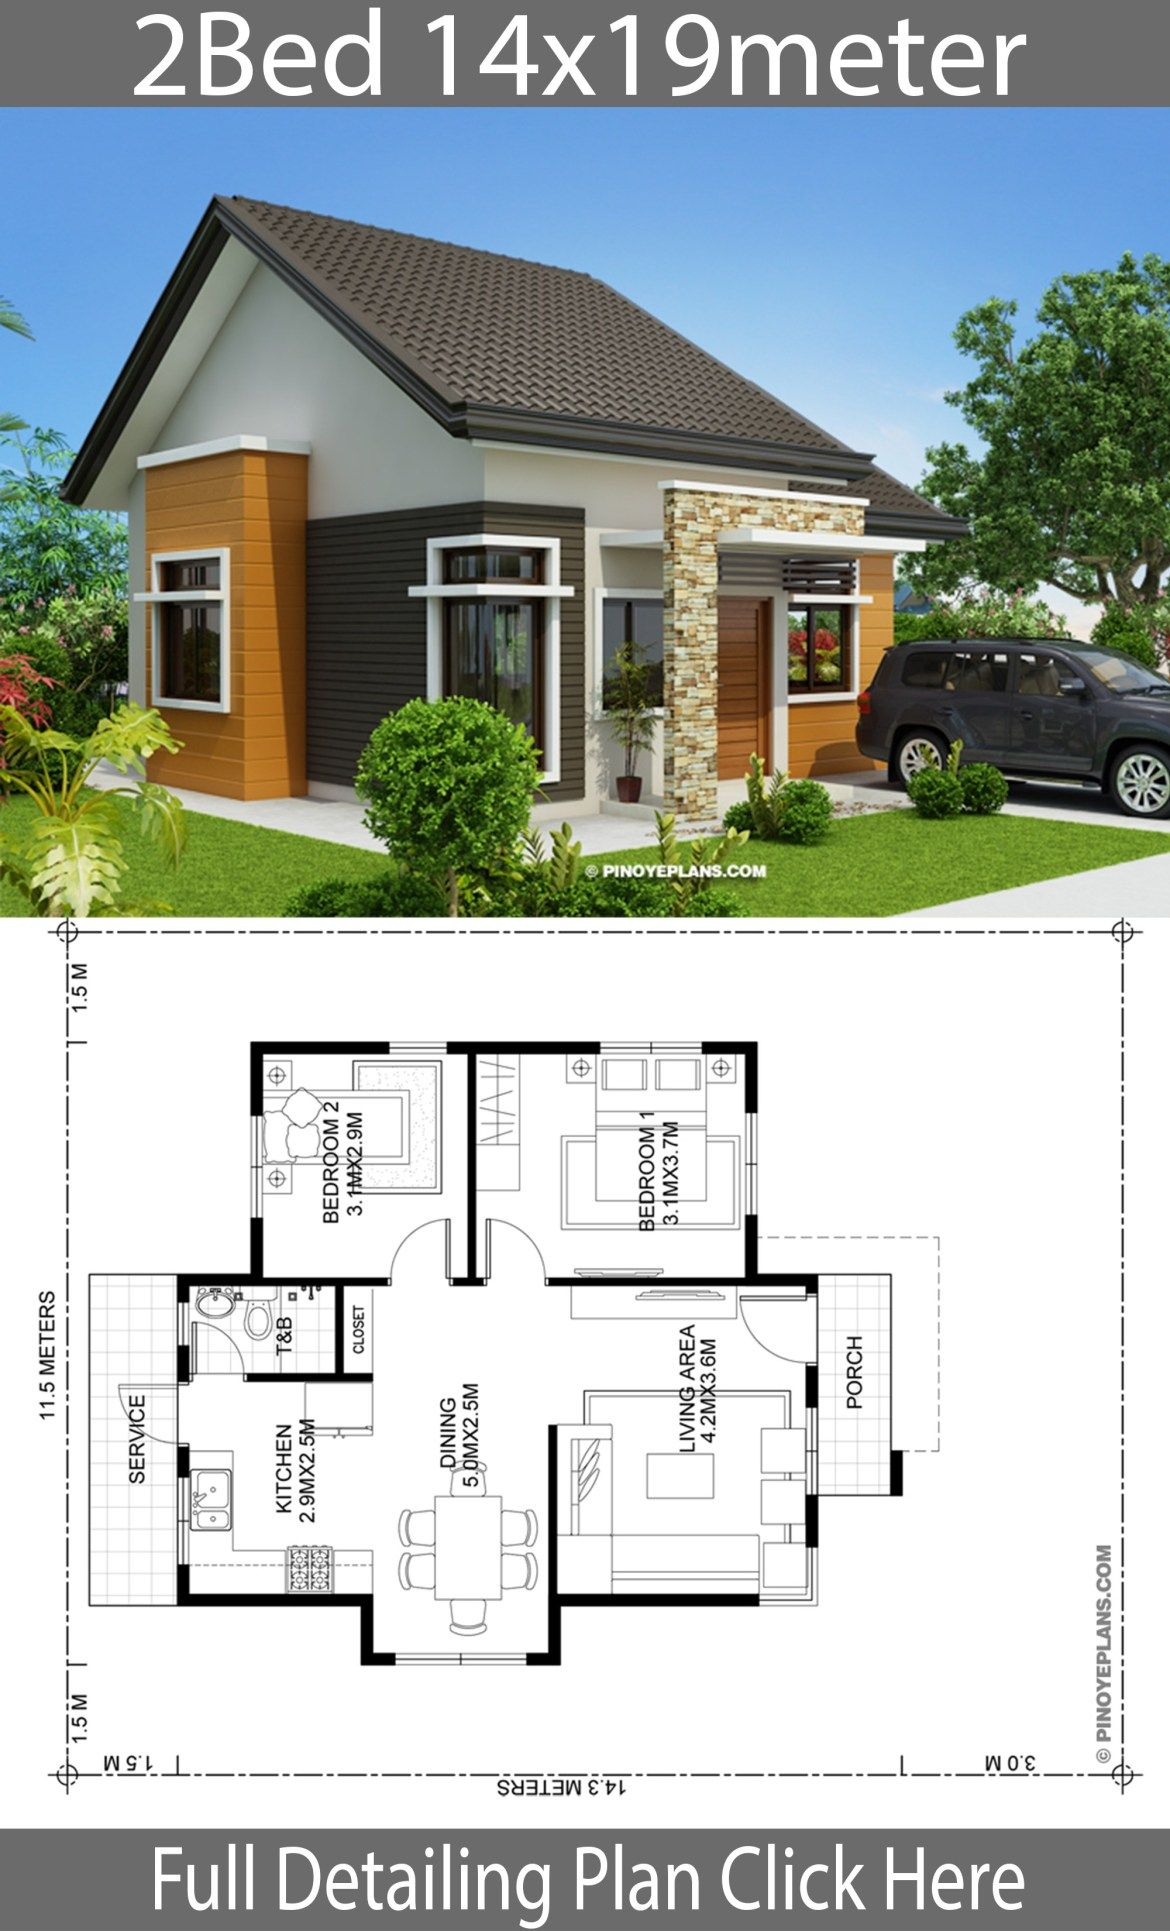 Home Design Plan 14x19m With 2 Bedrooms Home Planssearch Modern Bungalow House Small House Design Plans House Plan Gallery